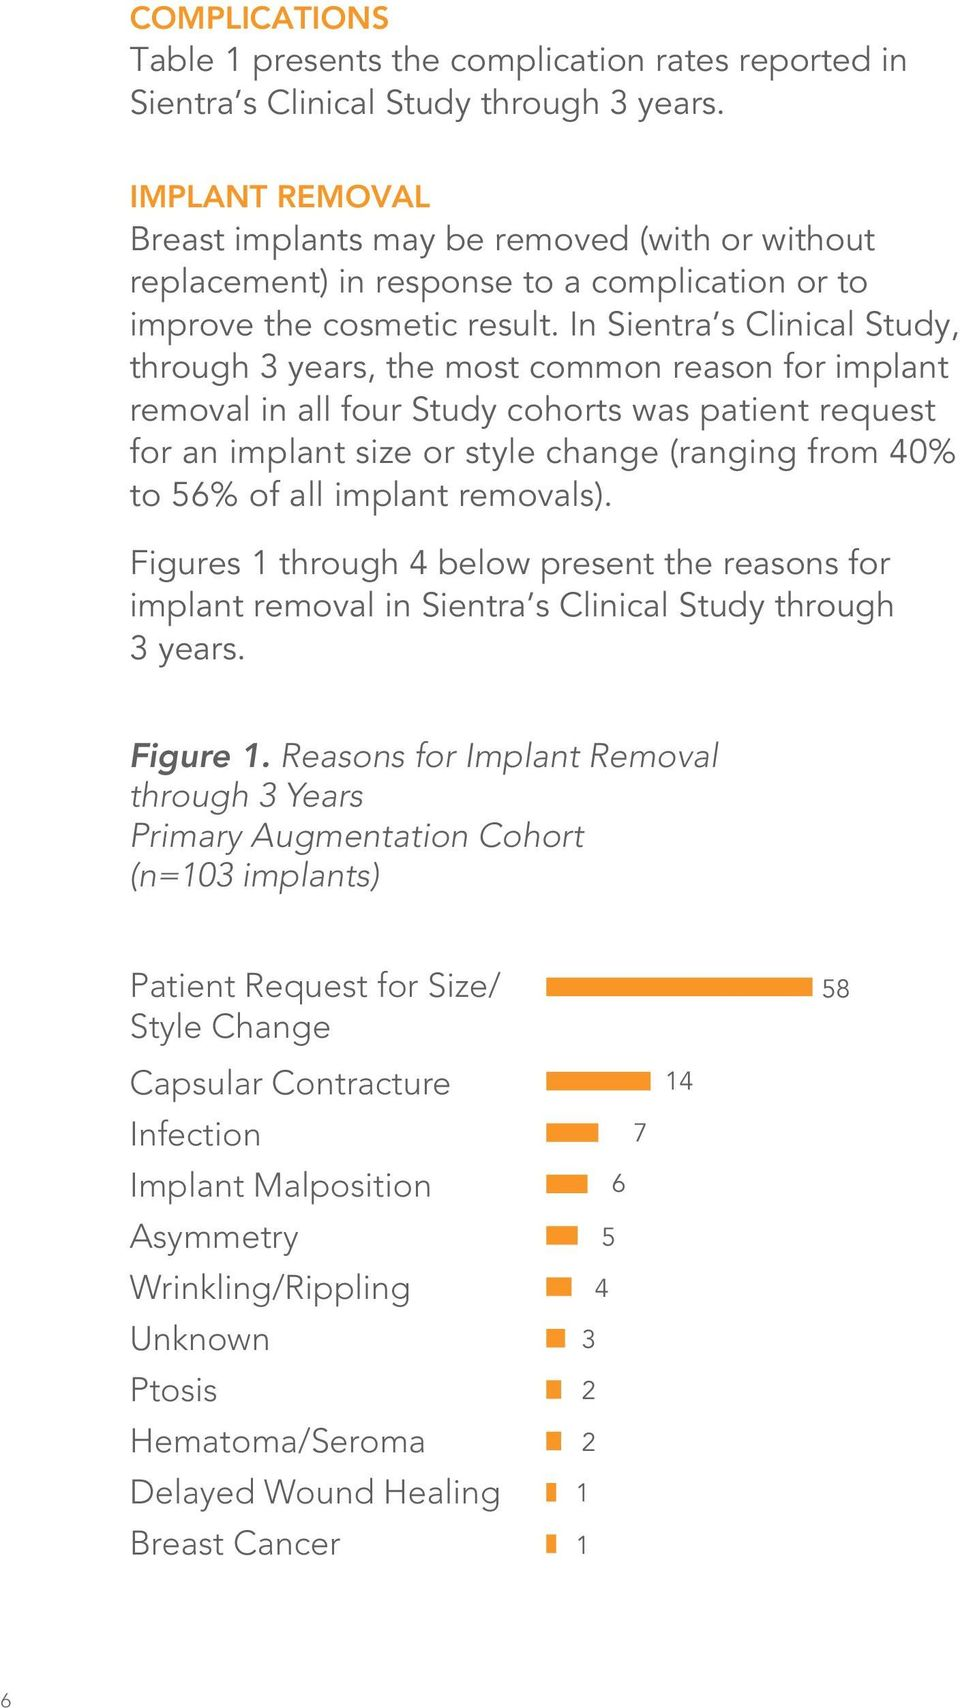 In Sientra s Clinical Study, through 3 years, the most common reason for implant removal in all four Study cohorts was patient request for an implant size or style change (ranging from 40% to 56% of